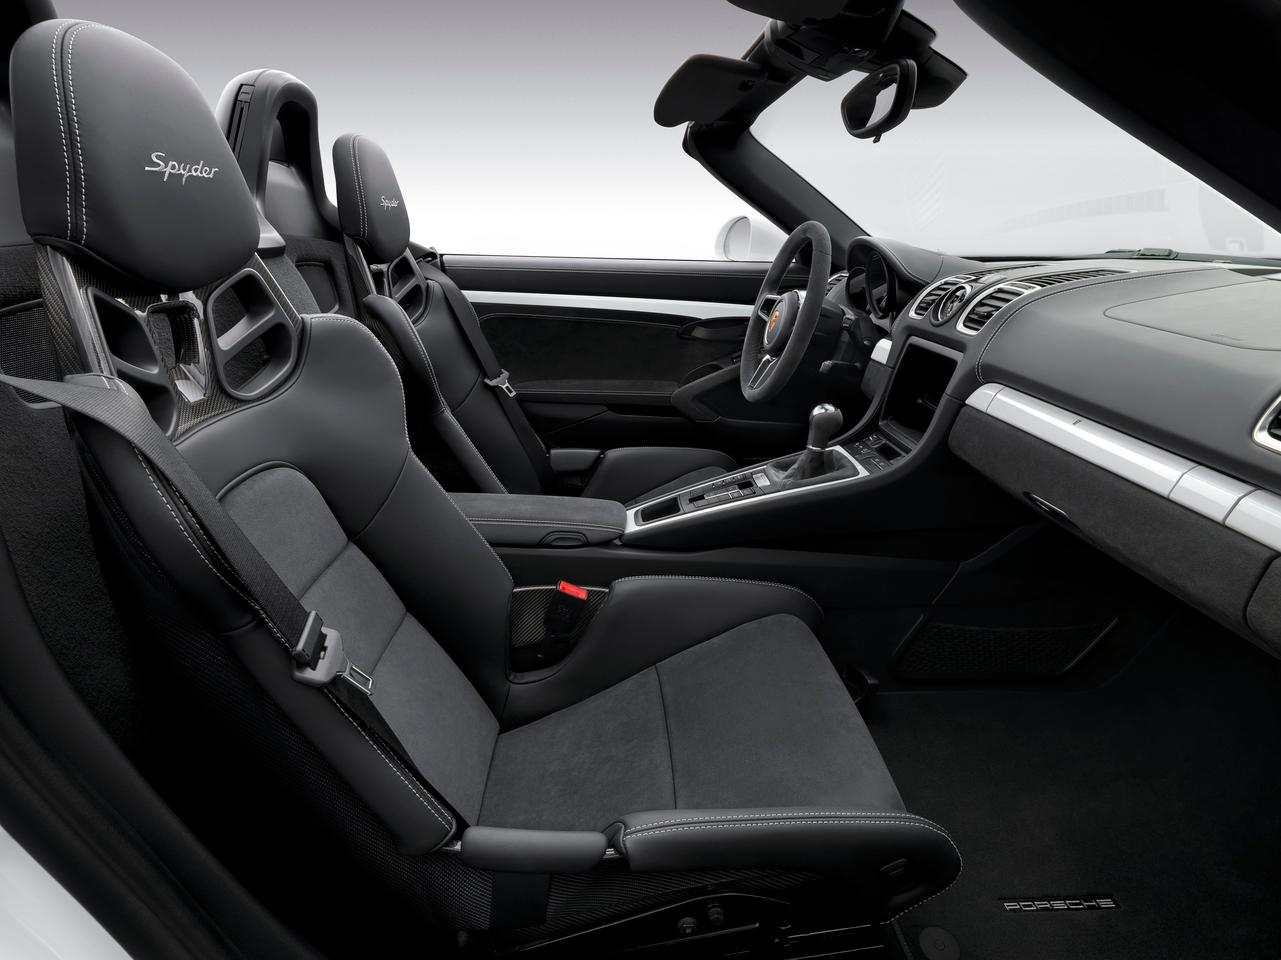 The 2016 Porsche Boxster Spyder interior